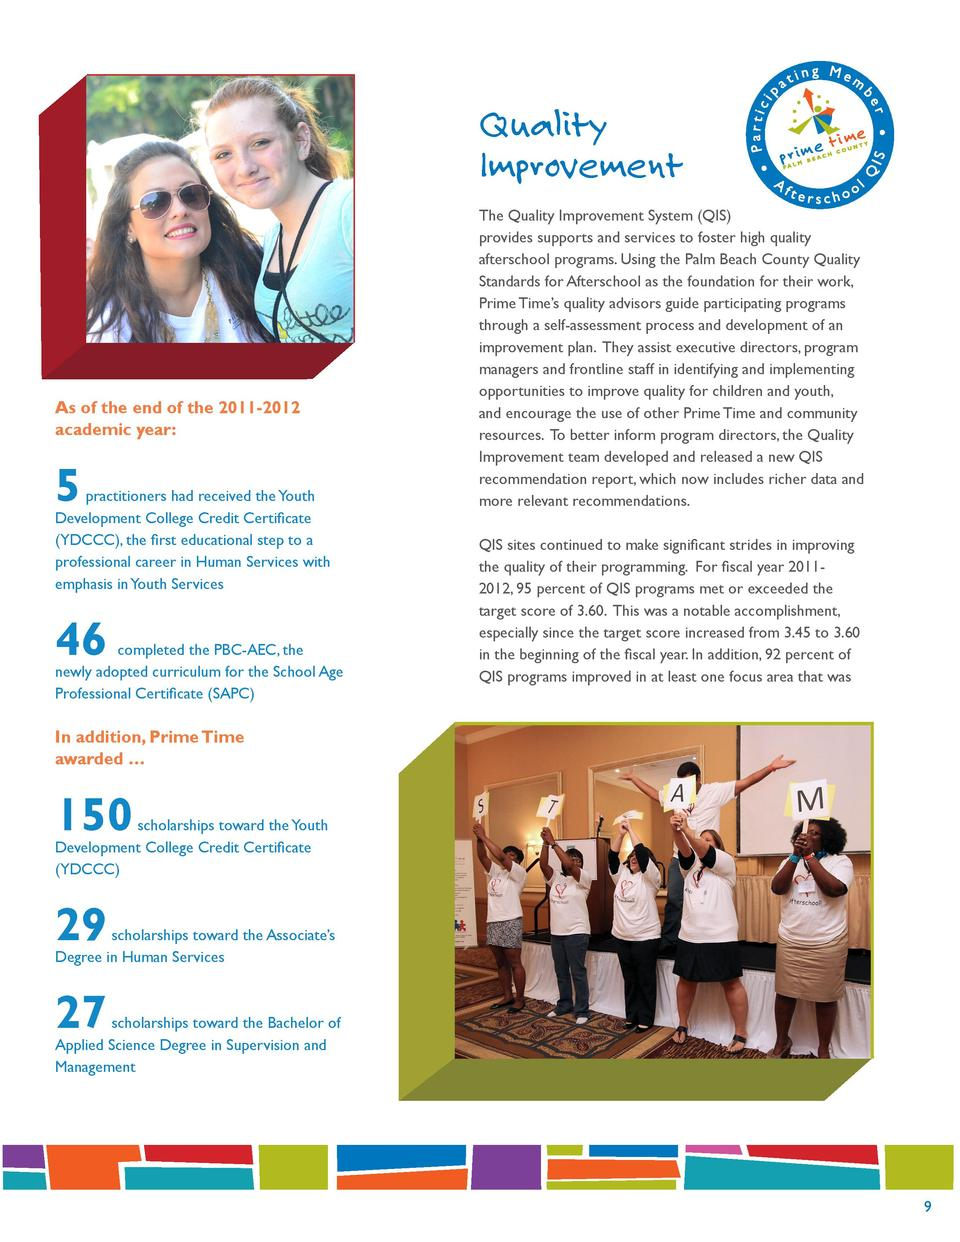 Quality Improvement  As of the end of the 2011-2012 academic year   5  practitioners had received the Youth Development Co...